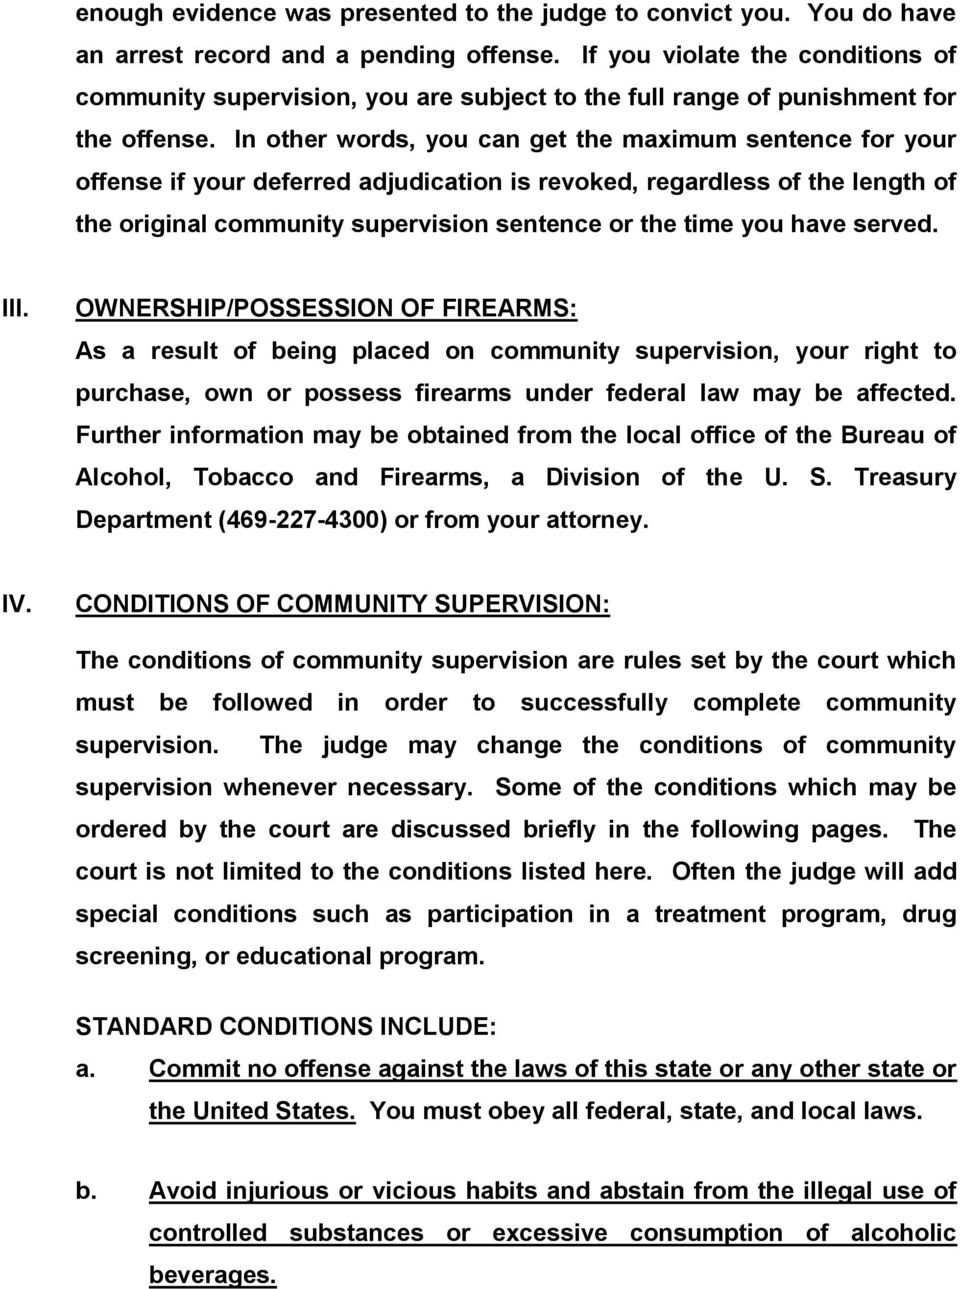 In other words, you can get the maximum sentence for your offense if your deferred adjudication is revoked, regardless of the length of the original community supervision sentence or the time you